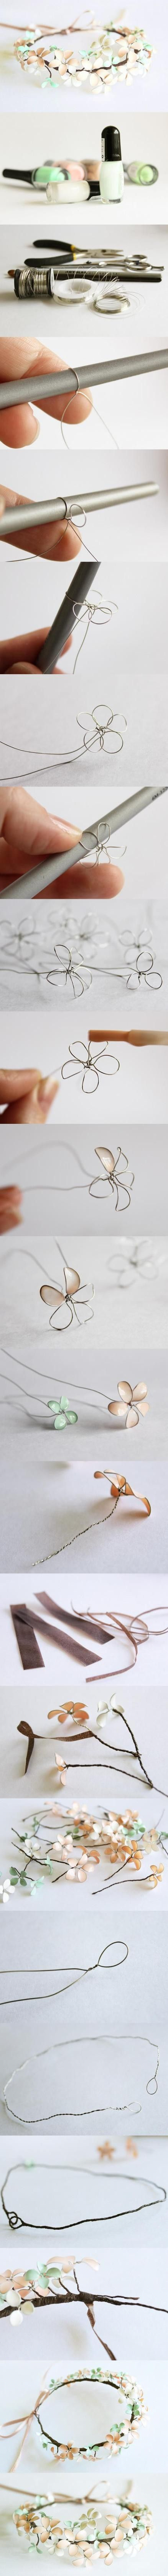 This is so beautiful! I doubt if I could make this one, but I'll give it a try. Sweet flower bracelet diy!